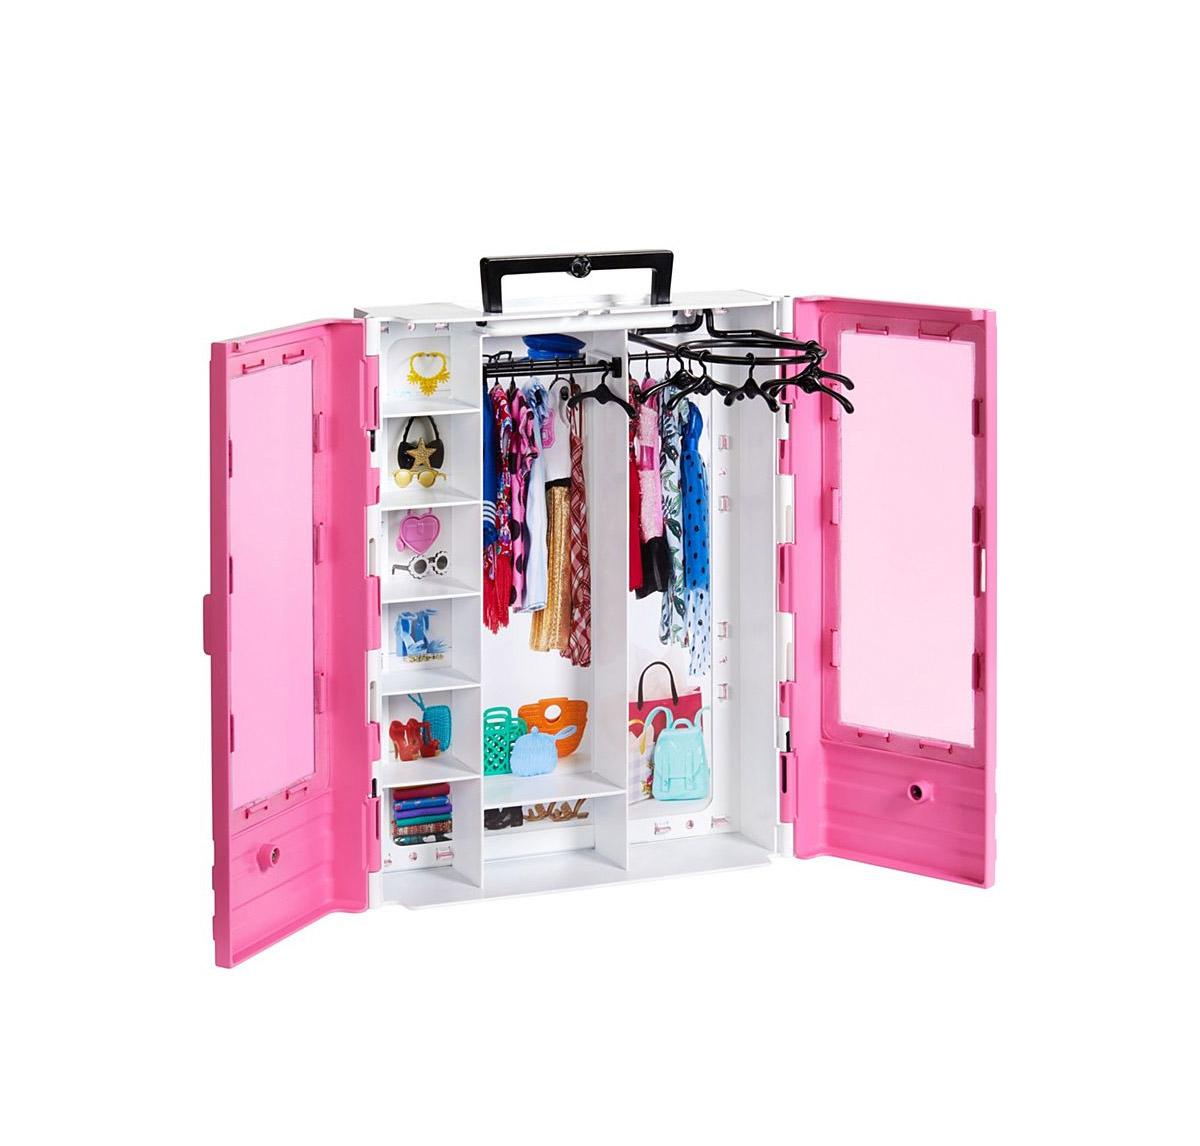 Mattel Barbie Dream Closet GBK11